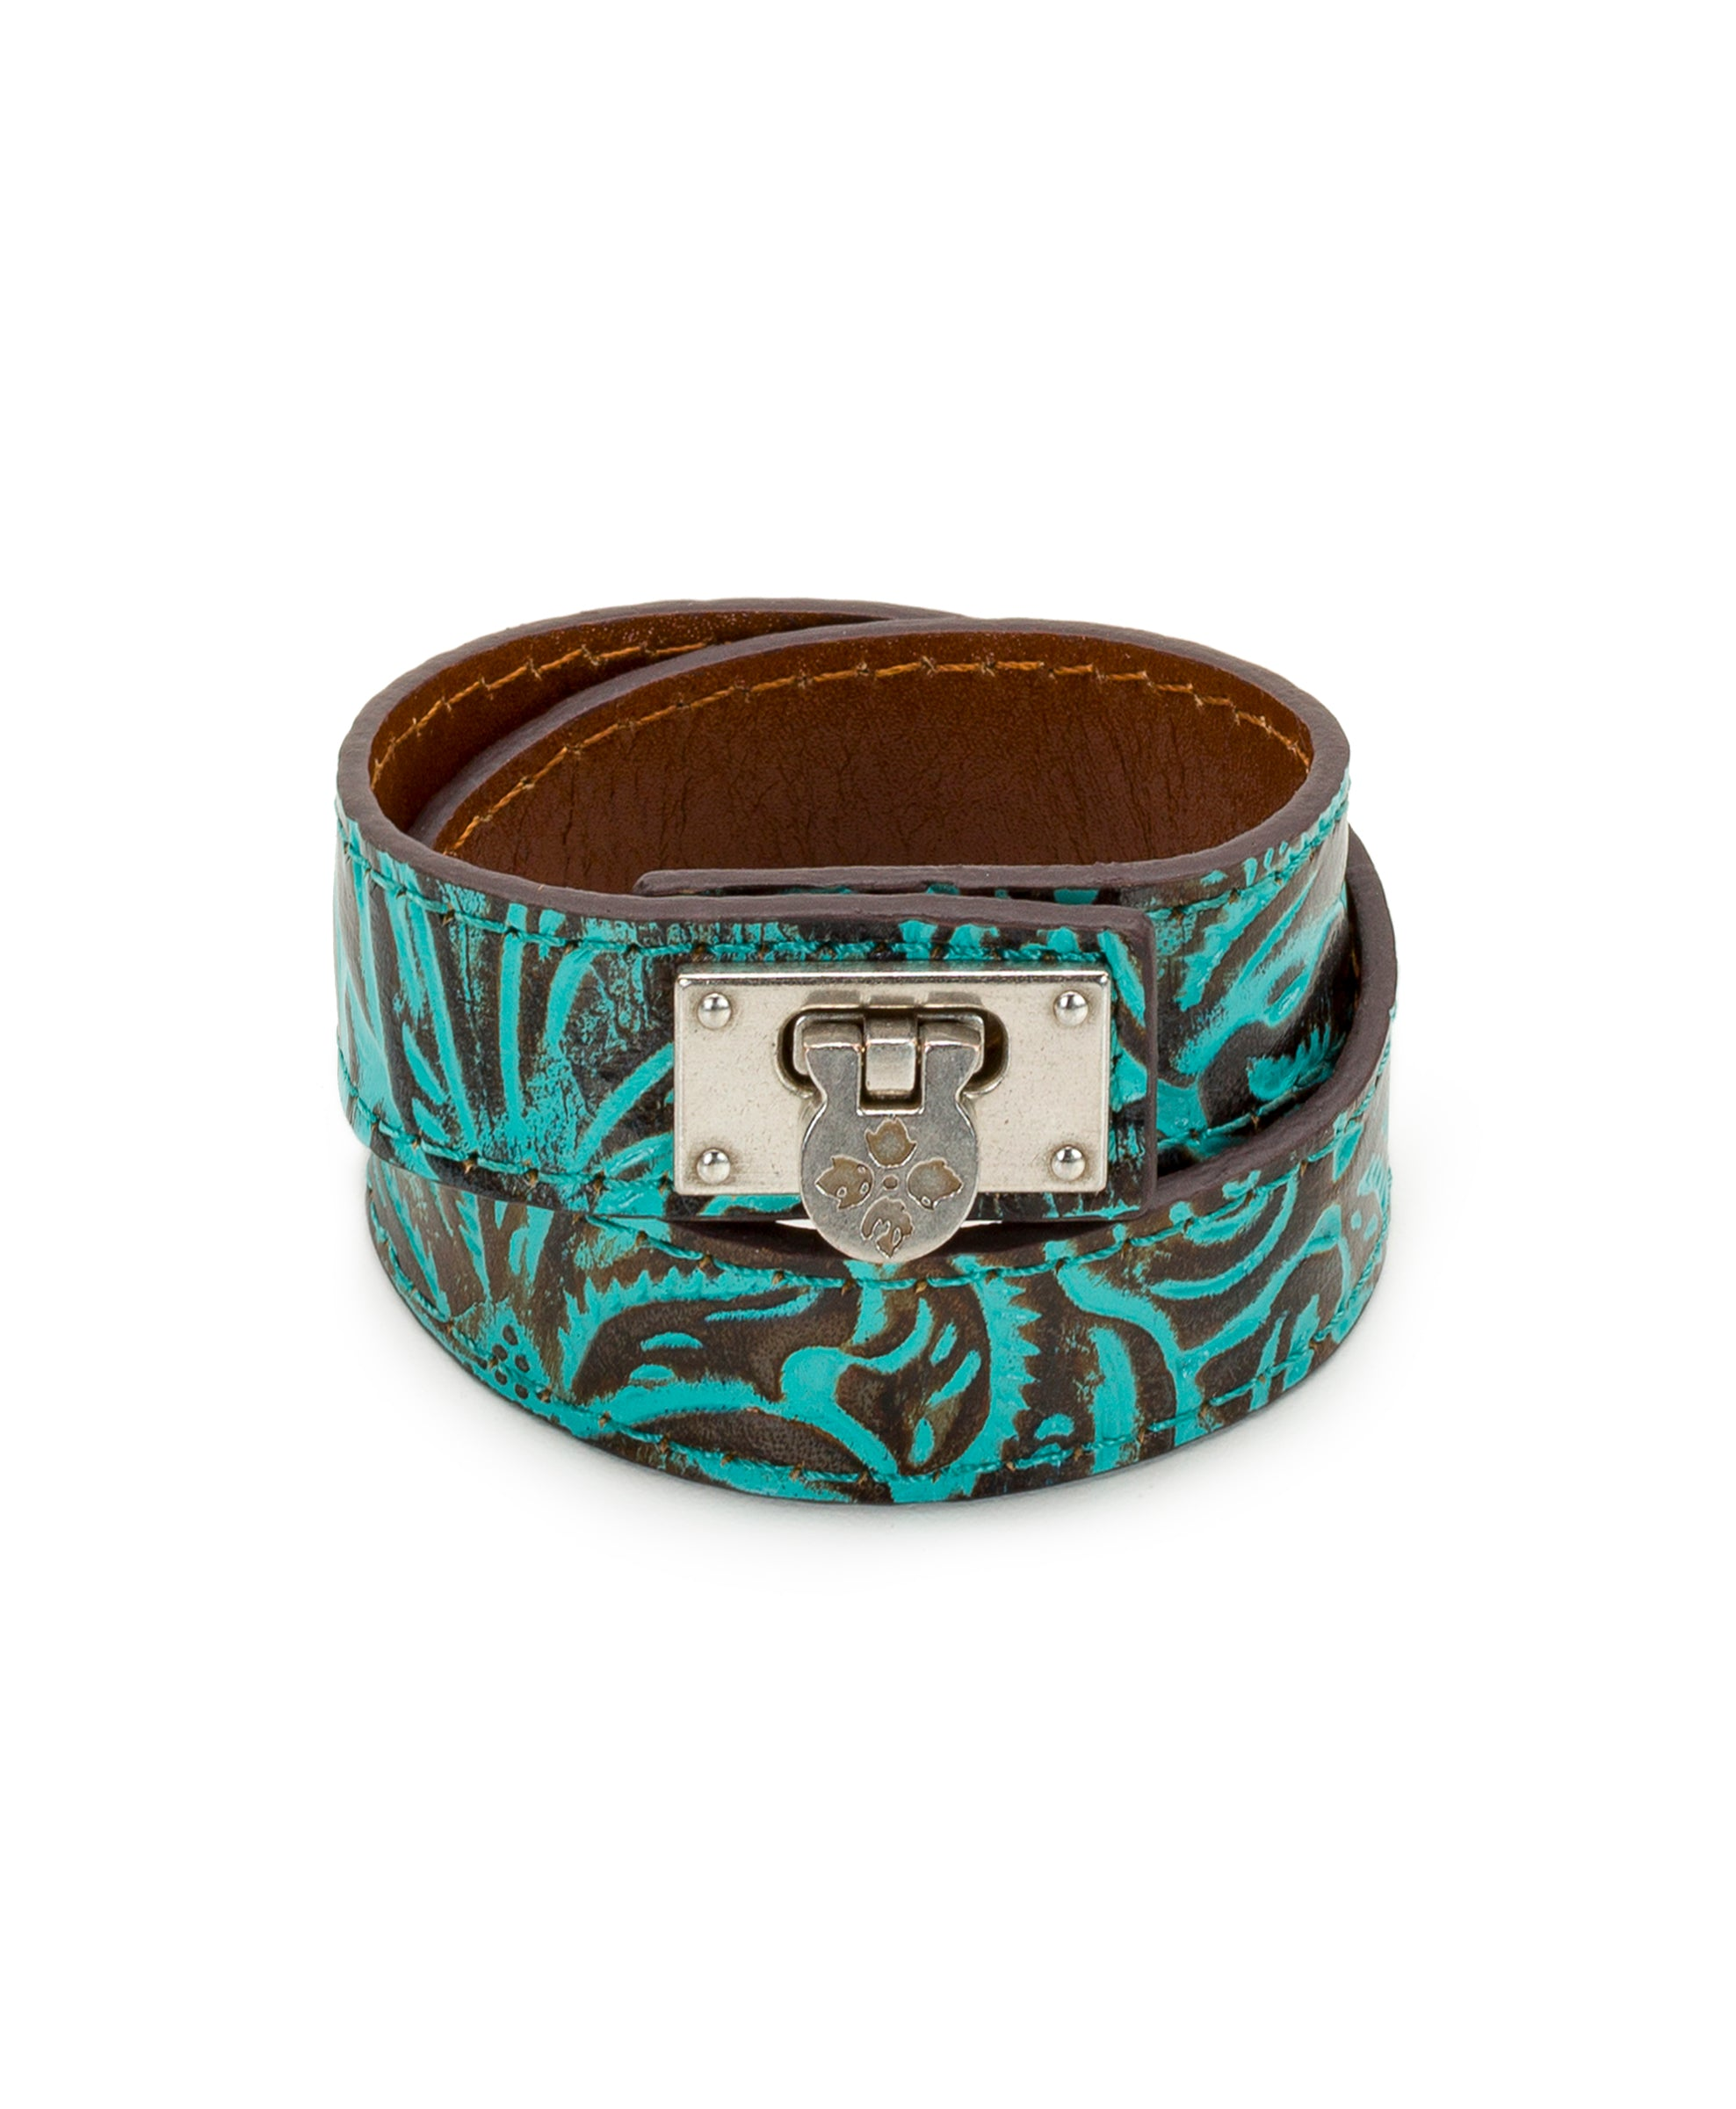 Rose Turquoise Leather Cuff - Rose Turquoise Leather Cuff